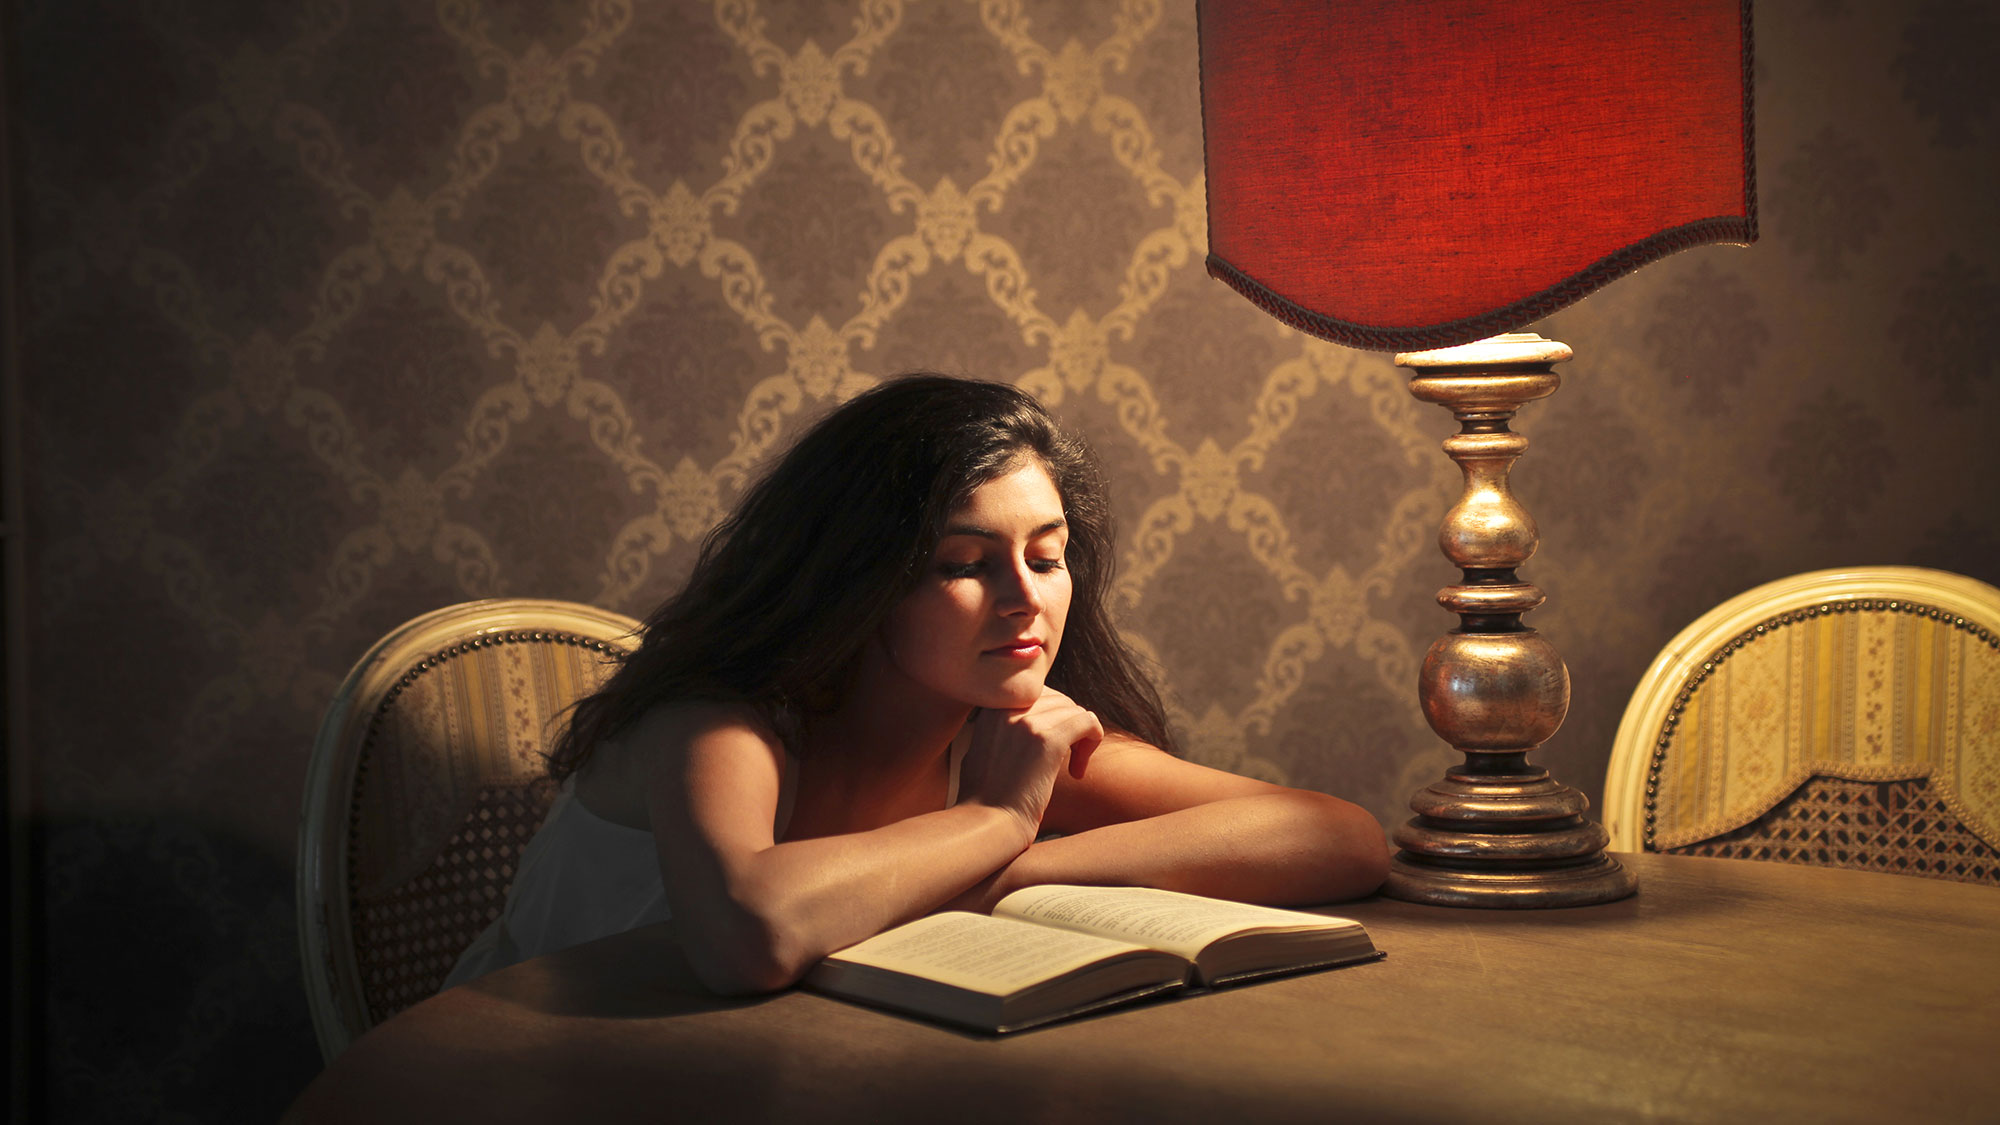 Girl reading a book late at night.